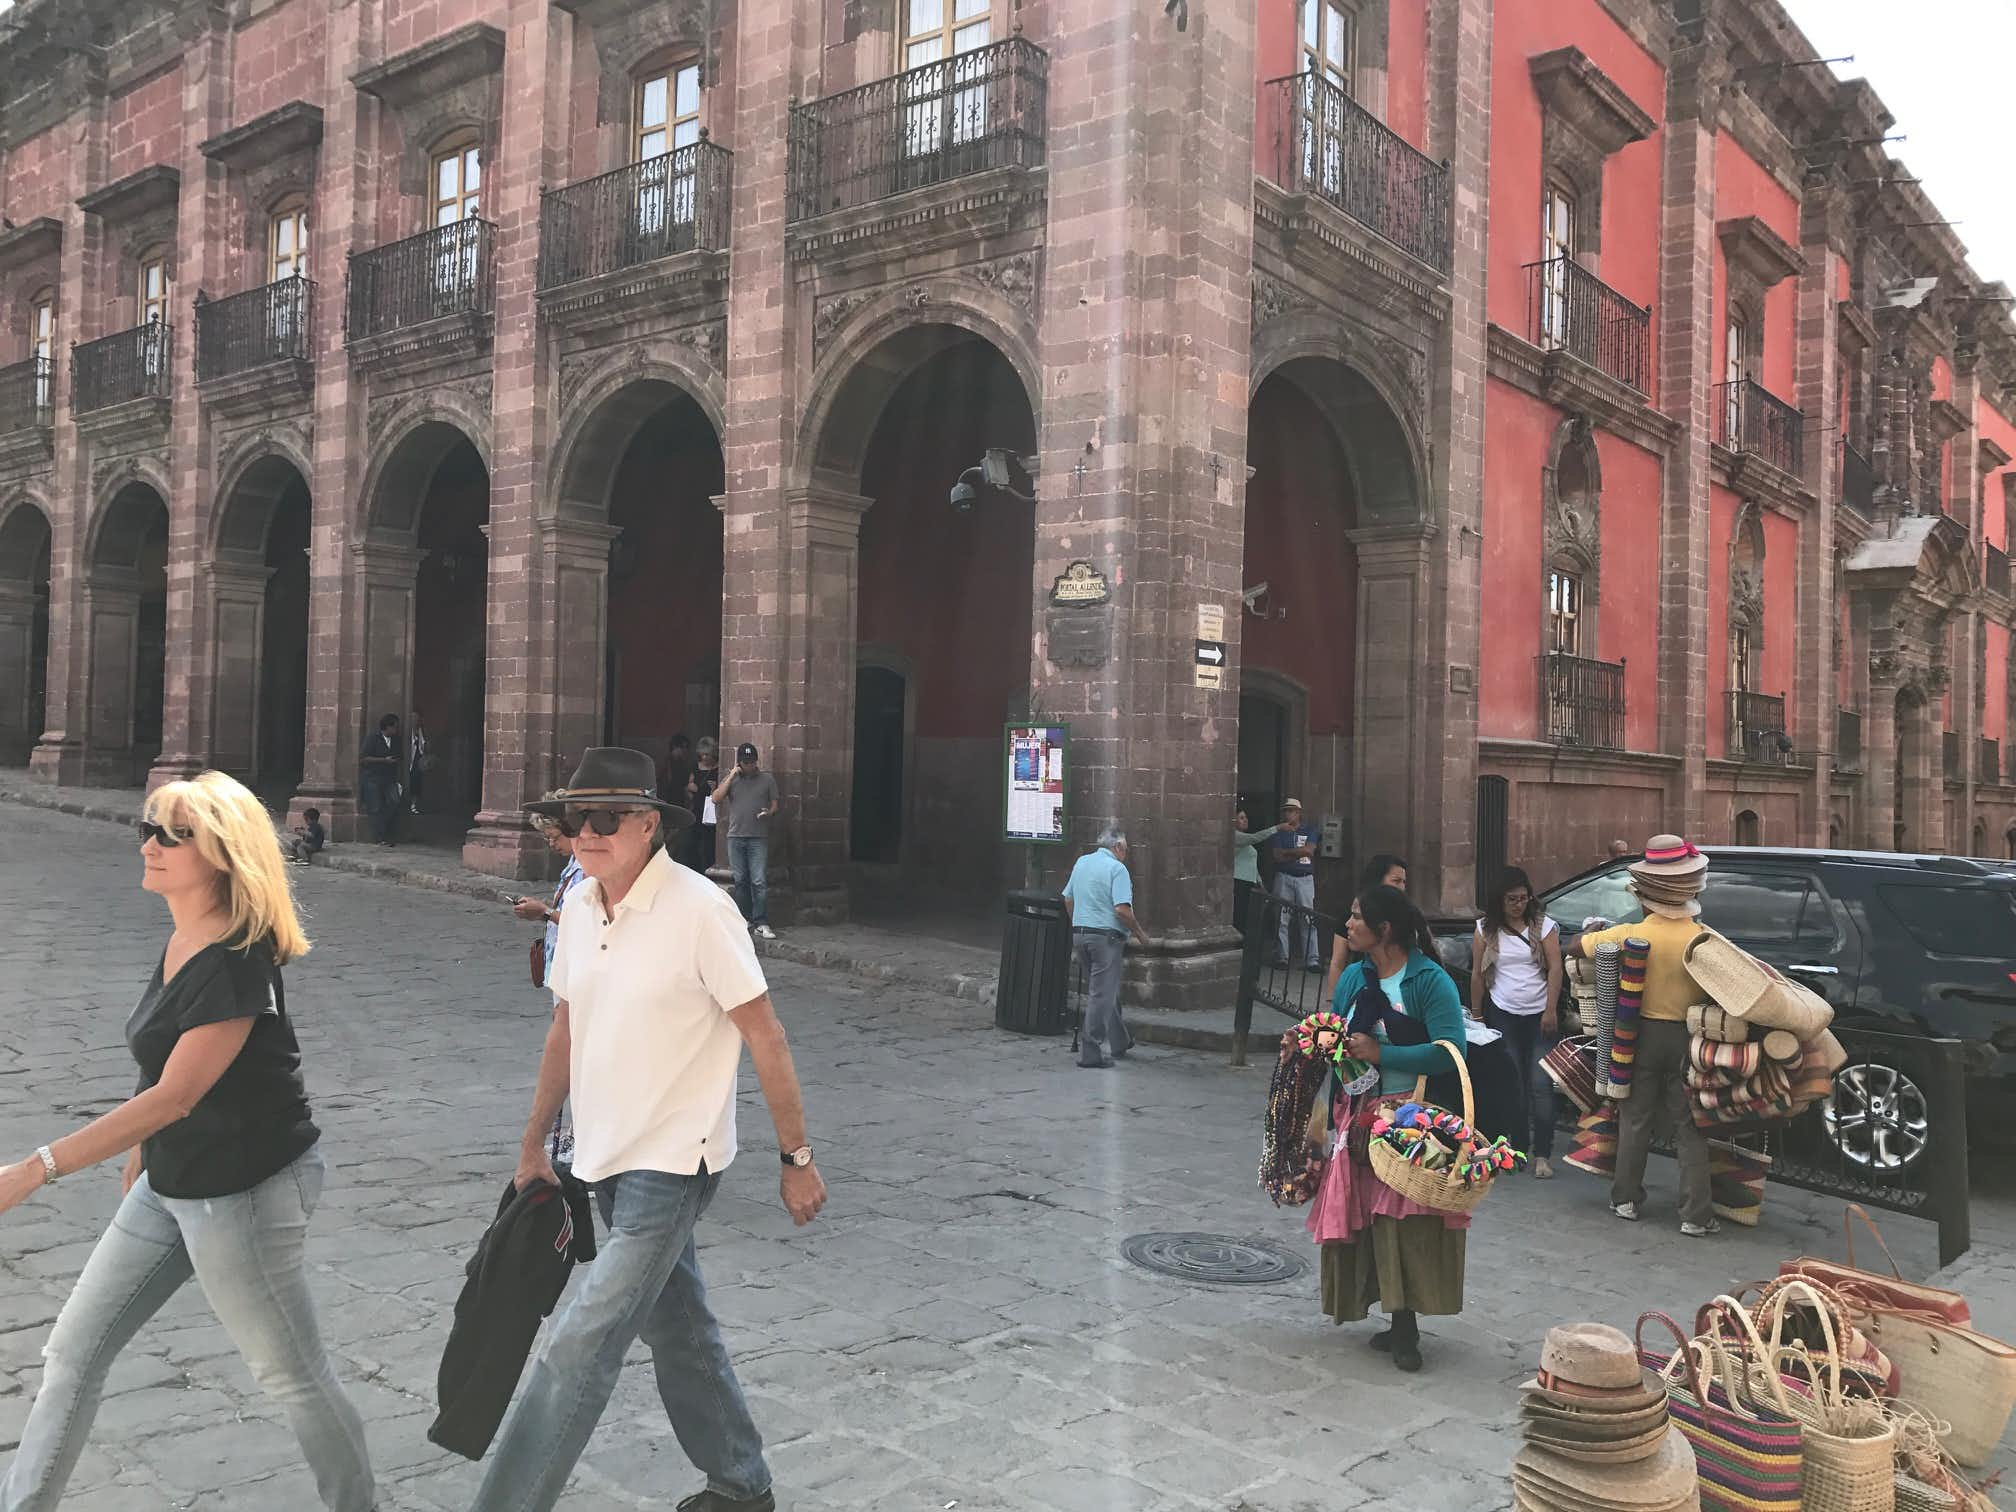 Mexico is the top foreign destination for American retirees, and San Miguel de Allende, Guanajuato, is among the preferred cities. (Angela Kocherga/Staff Photographer)